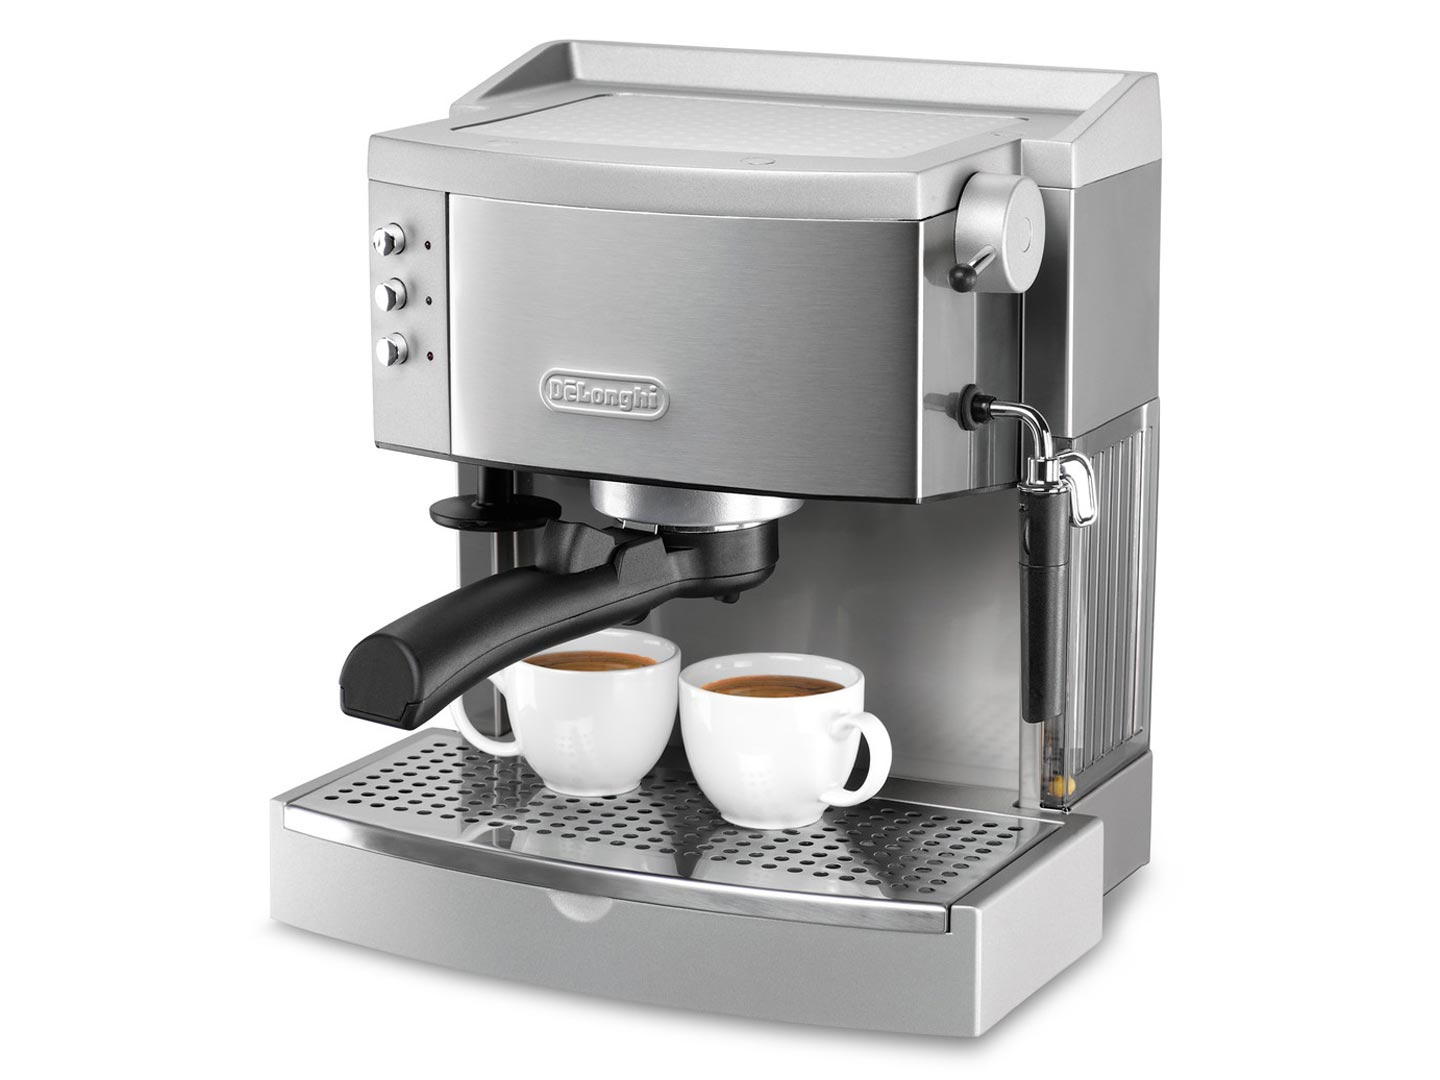 Delonghi ec702 15 bar pump espresso maker review techlogitic Coffee maker reviews 2016